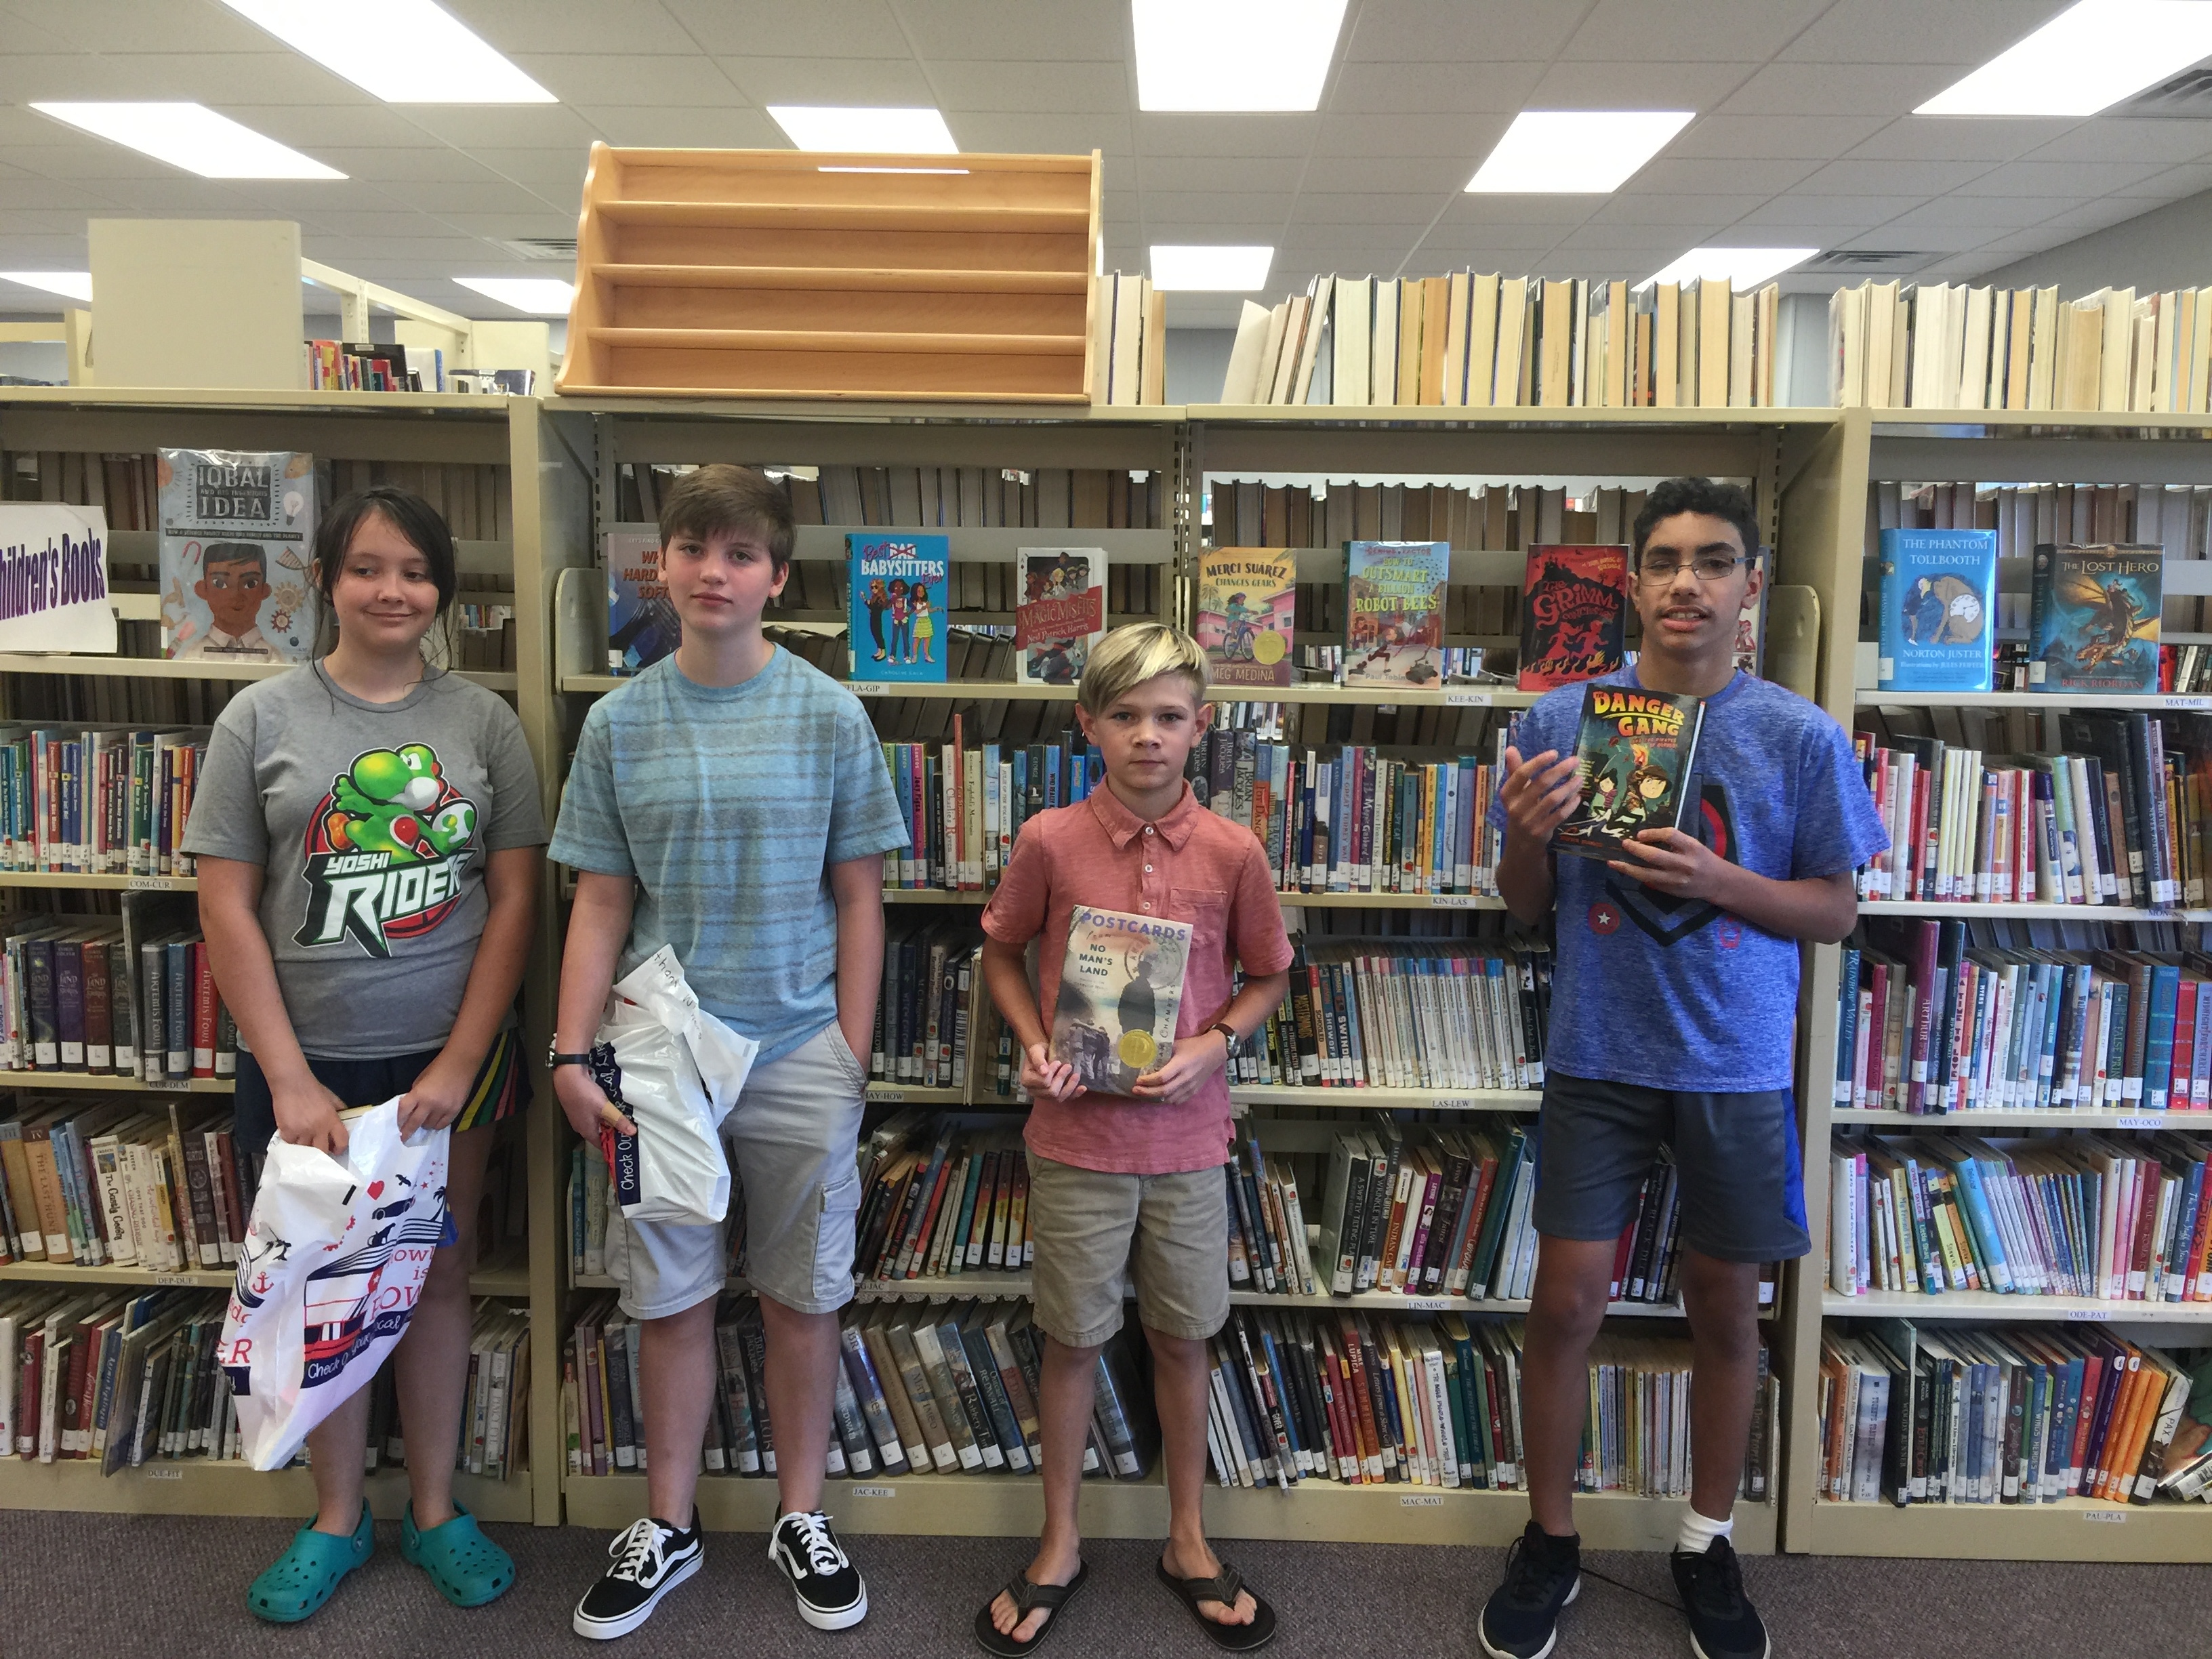 Congratulations to our Summer Reading Middle School winners!